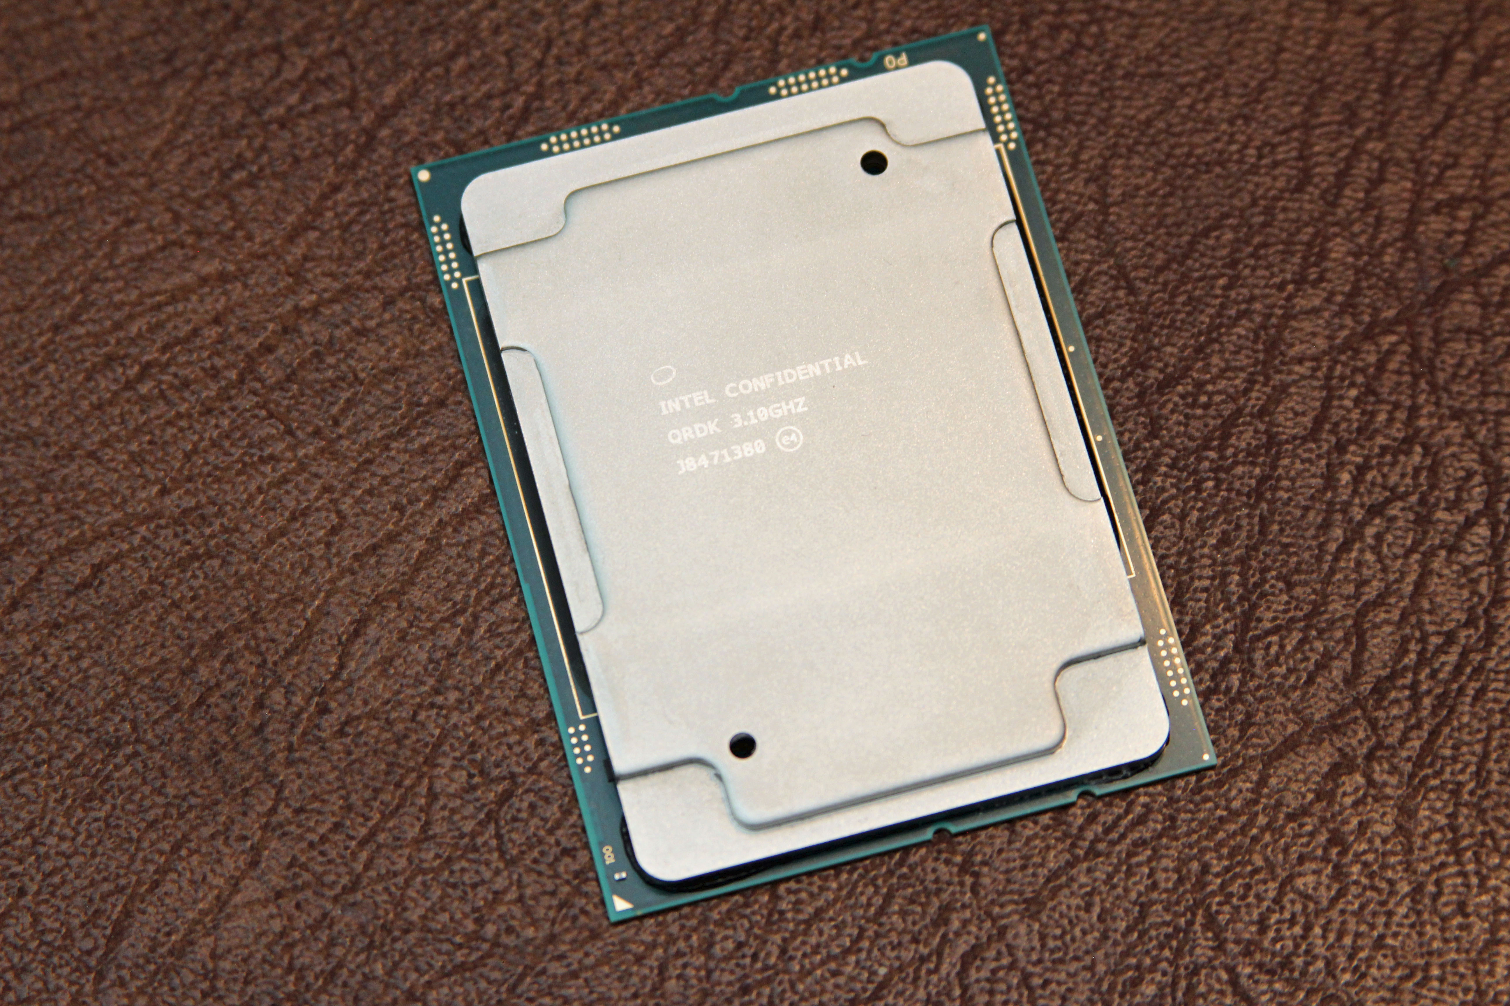 Intel Xeon W 3175x Review Ultimate Performance At The Ultimate Price Tom S Hardware Tom S Hardware